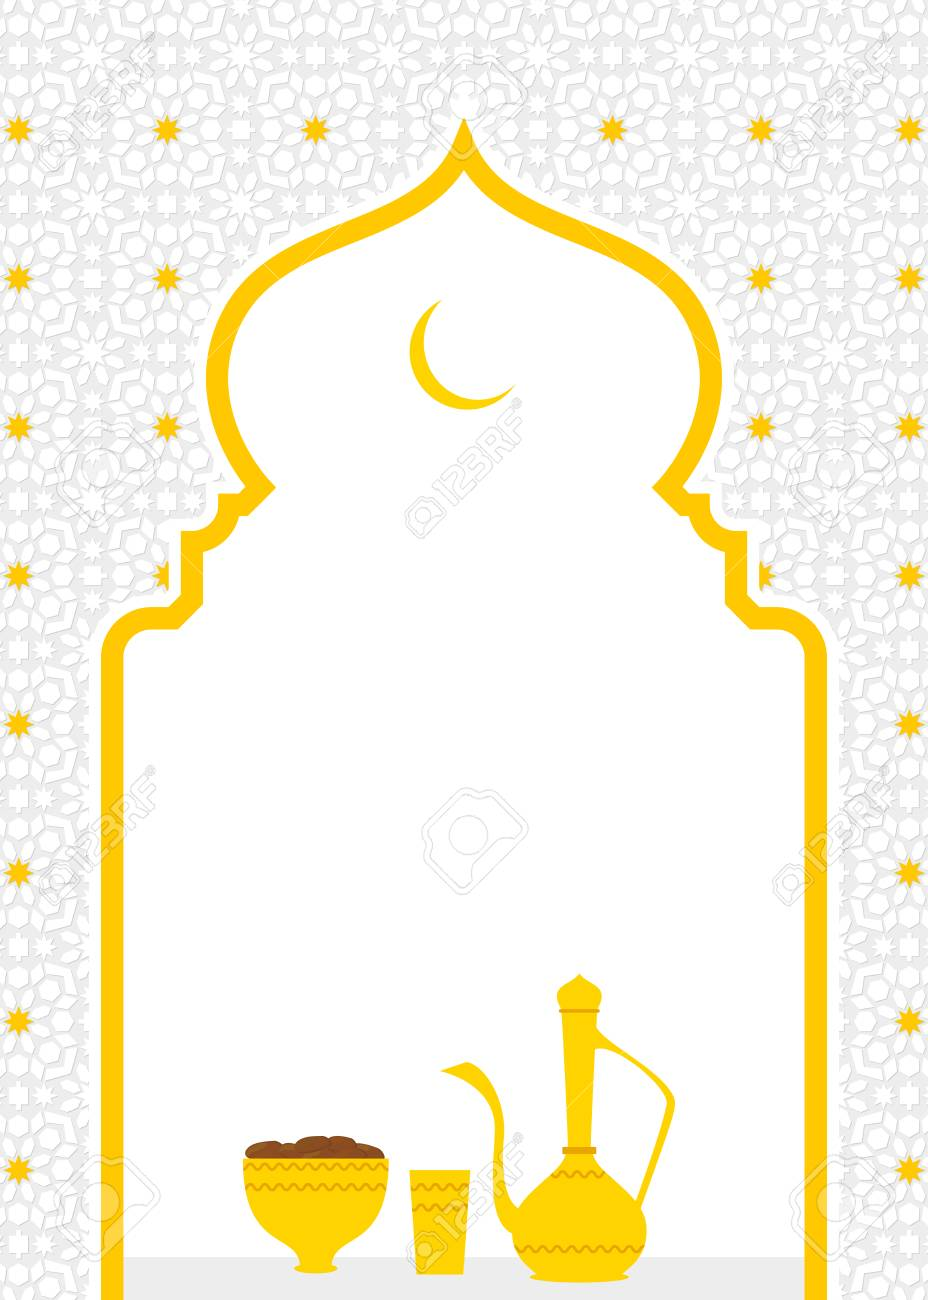 Ramadan iftar invitation card template with copy space royalty free ramadan iftar invitation card template with copy space stock vector 79572178 stopboris Gallery